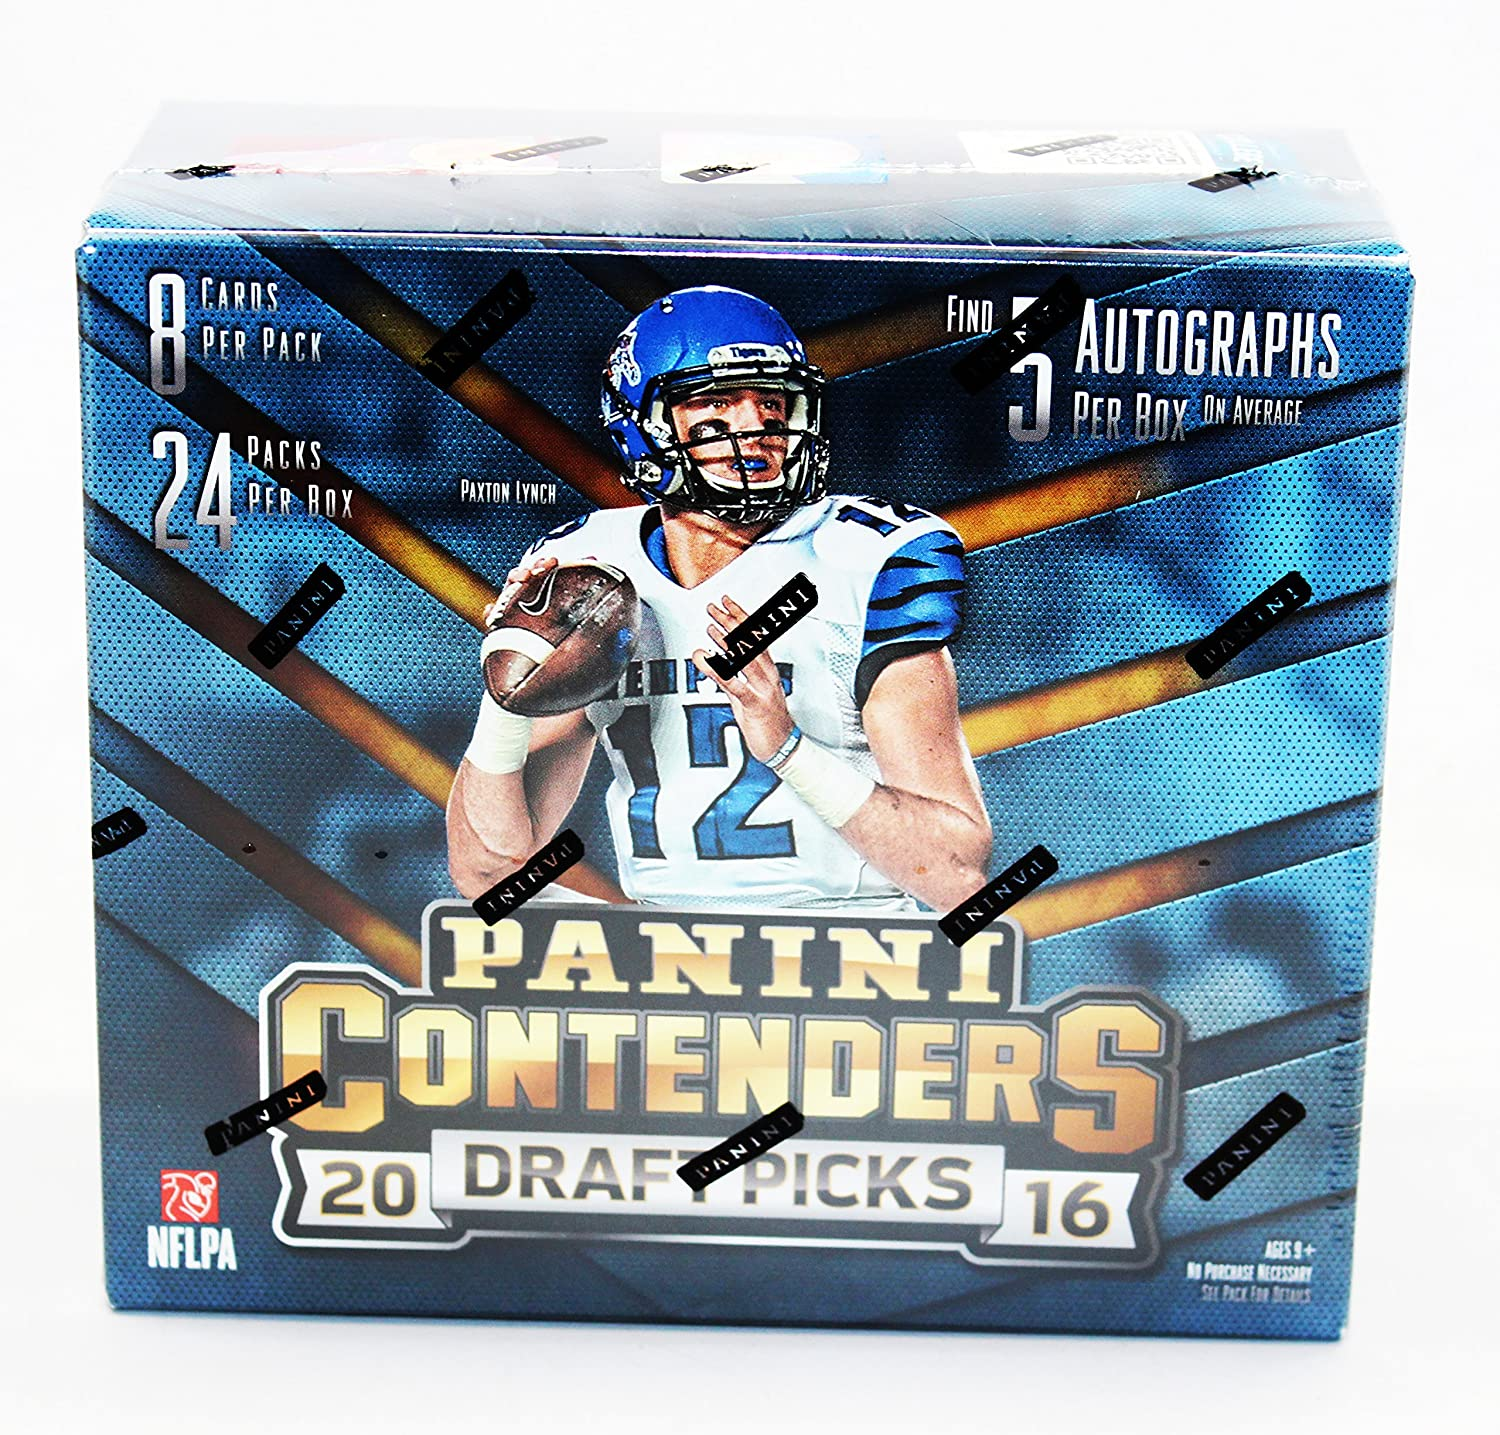 2016 Panini Contenders Draft Picks box pk Mail order cheap 24 HOBBY Football 70% OFF Outlet